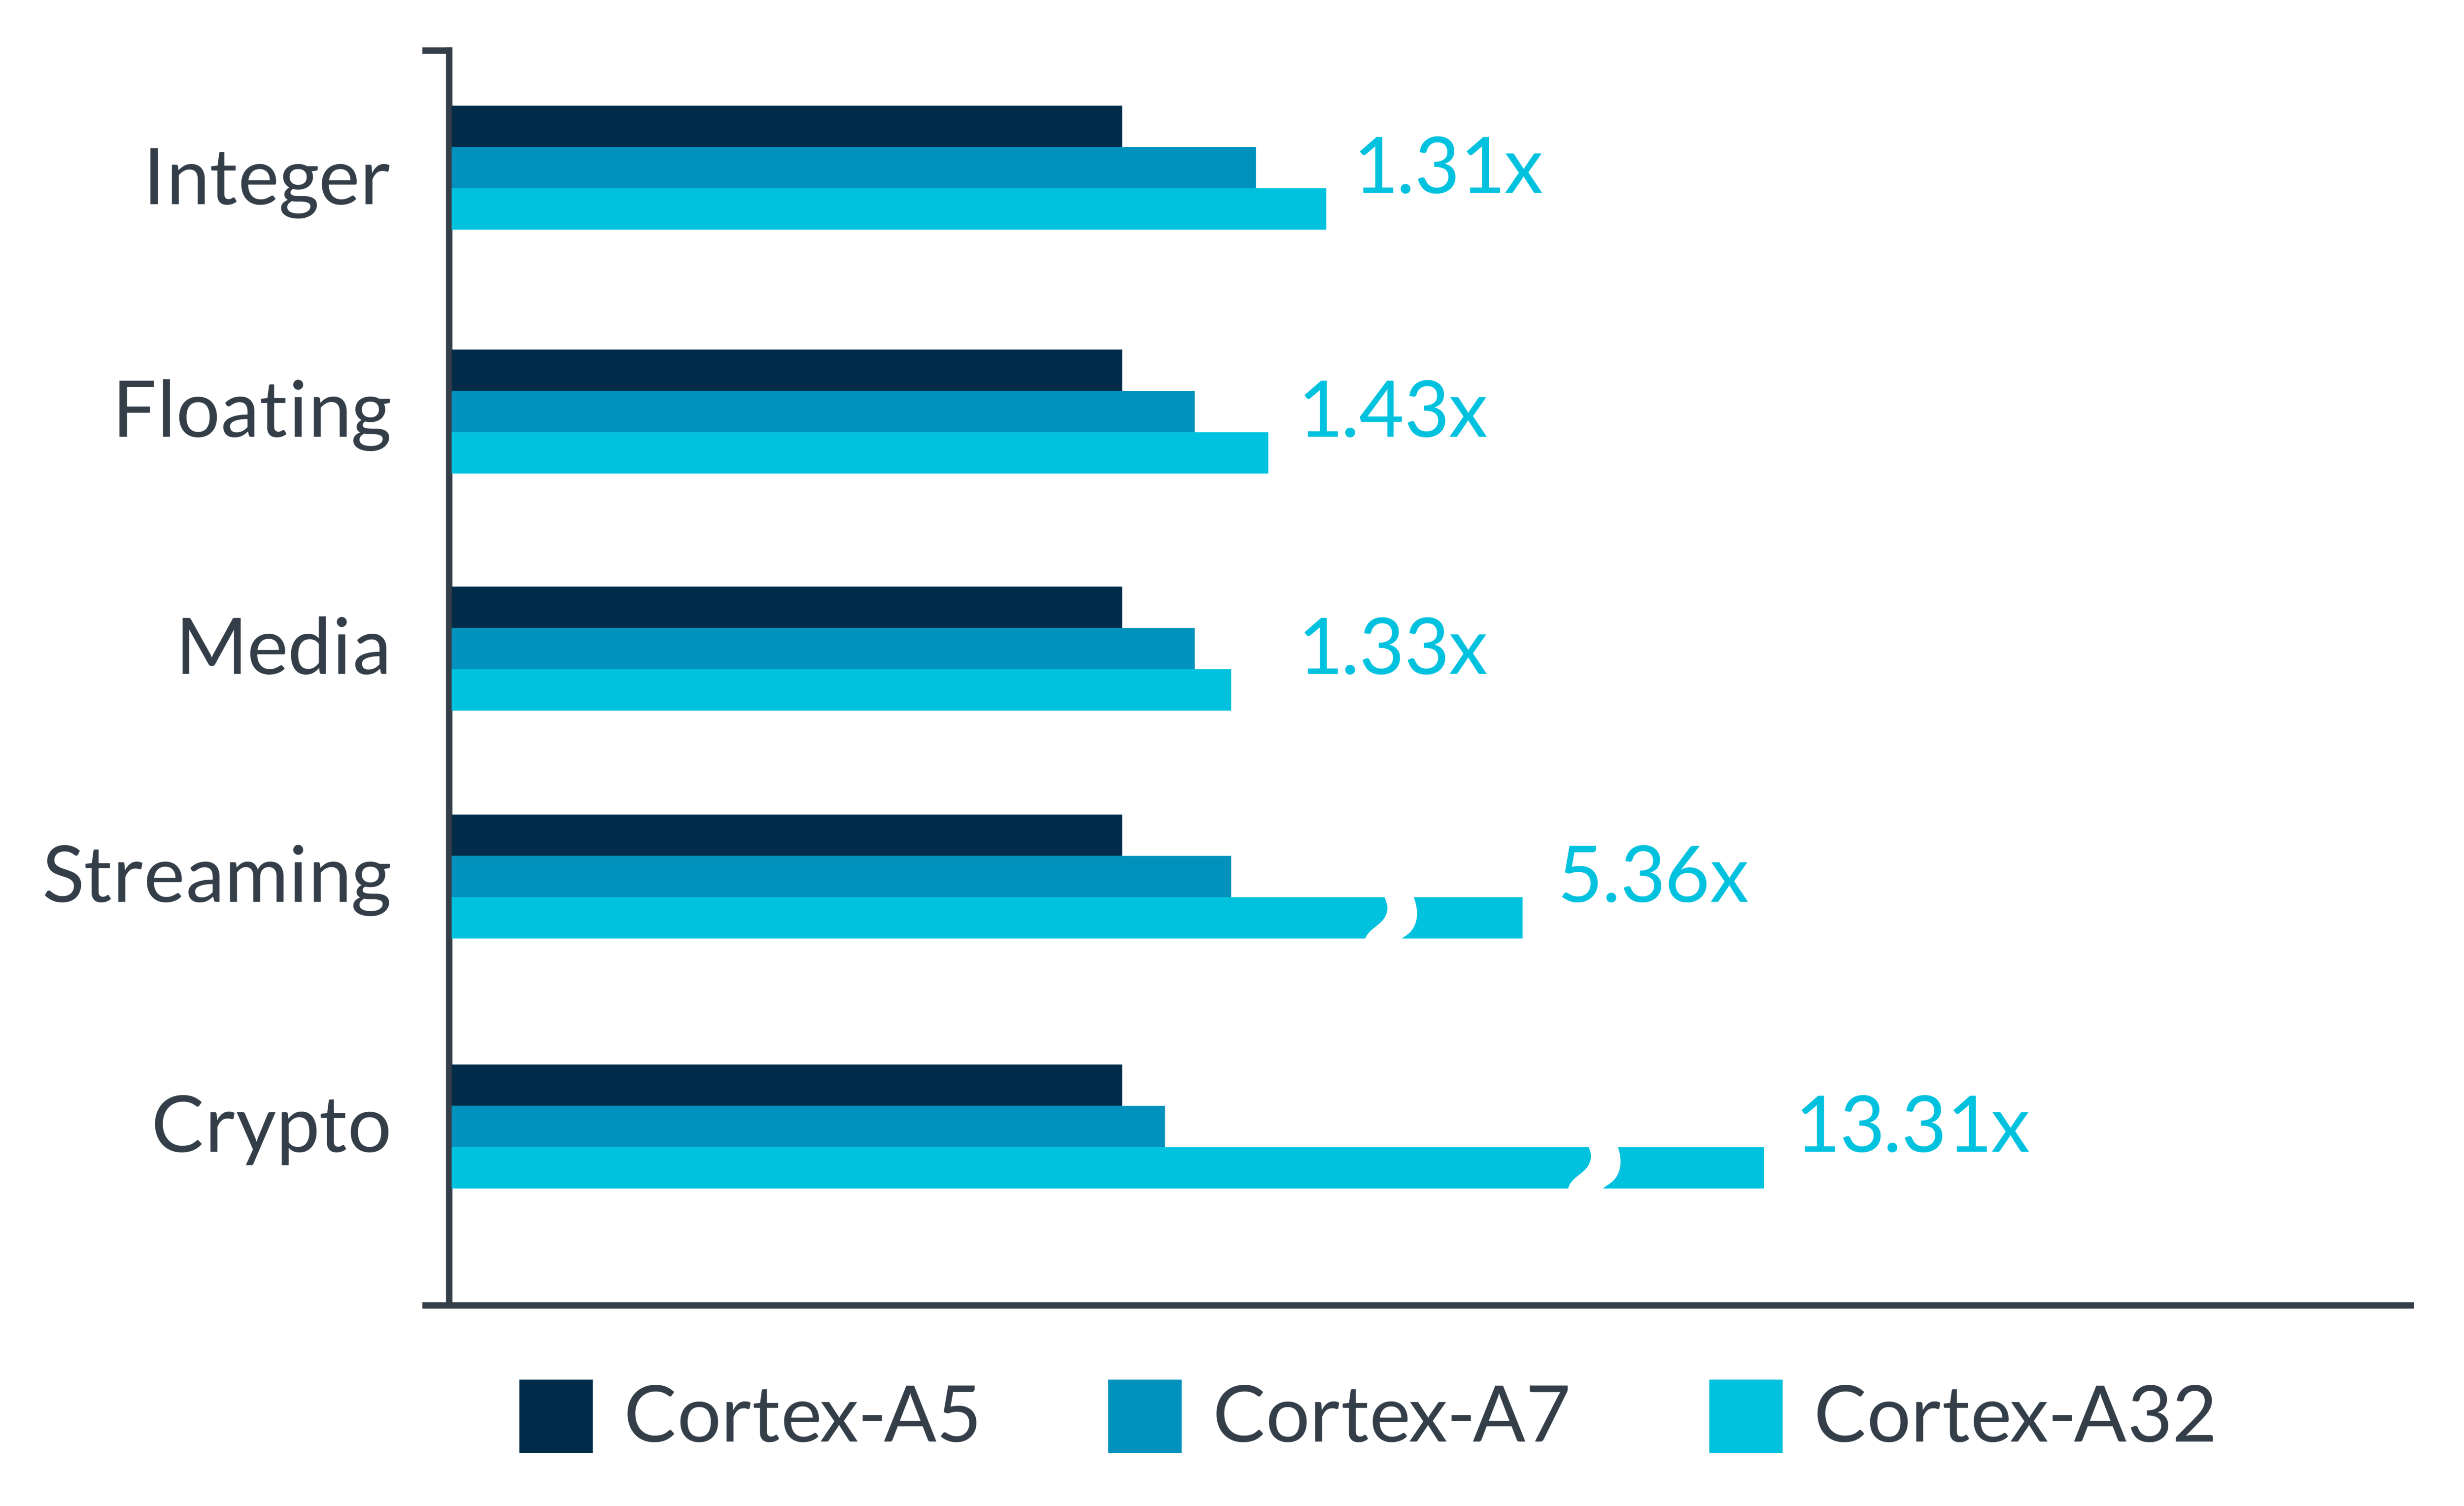 Performance graph on Cortex-A5, Cortex-A7 and Cortex-A32